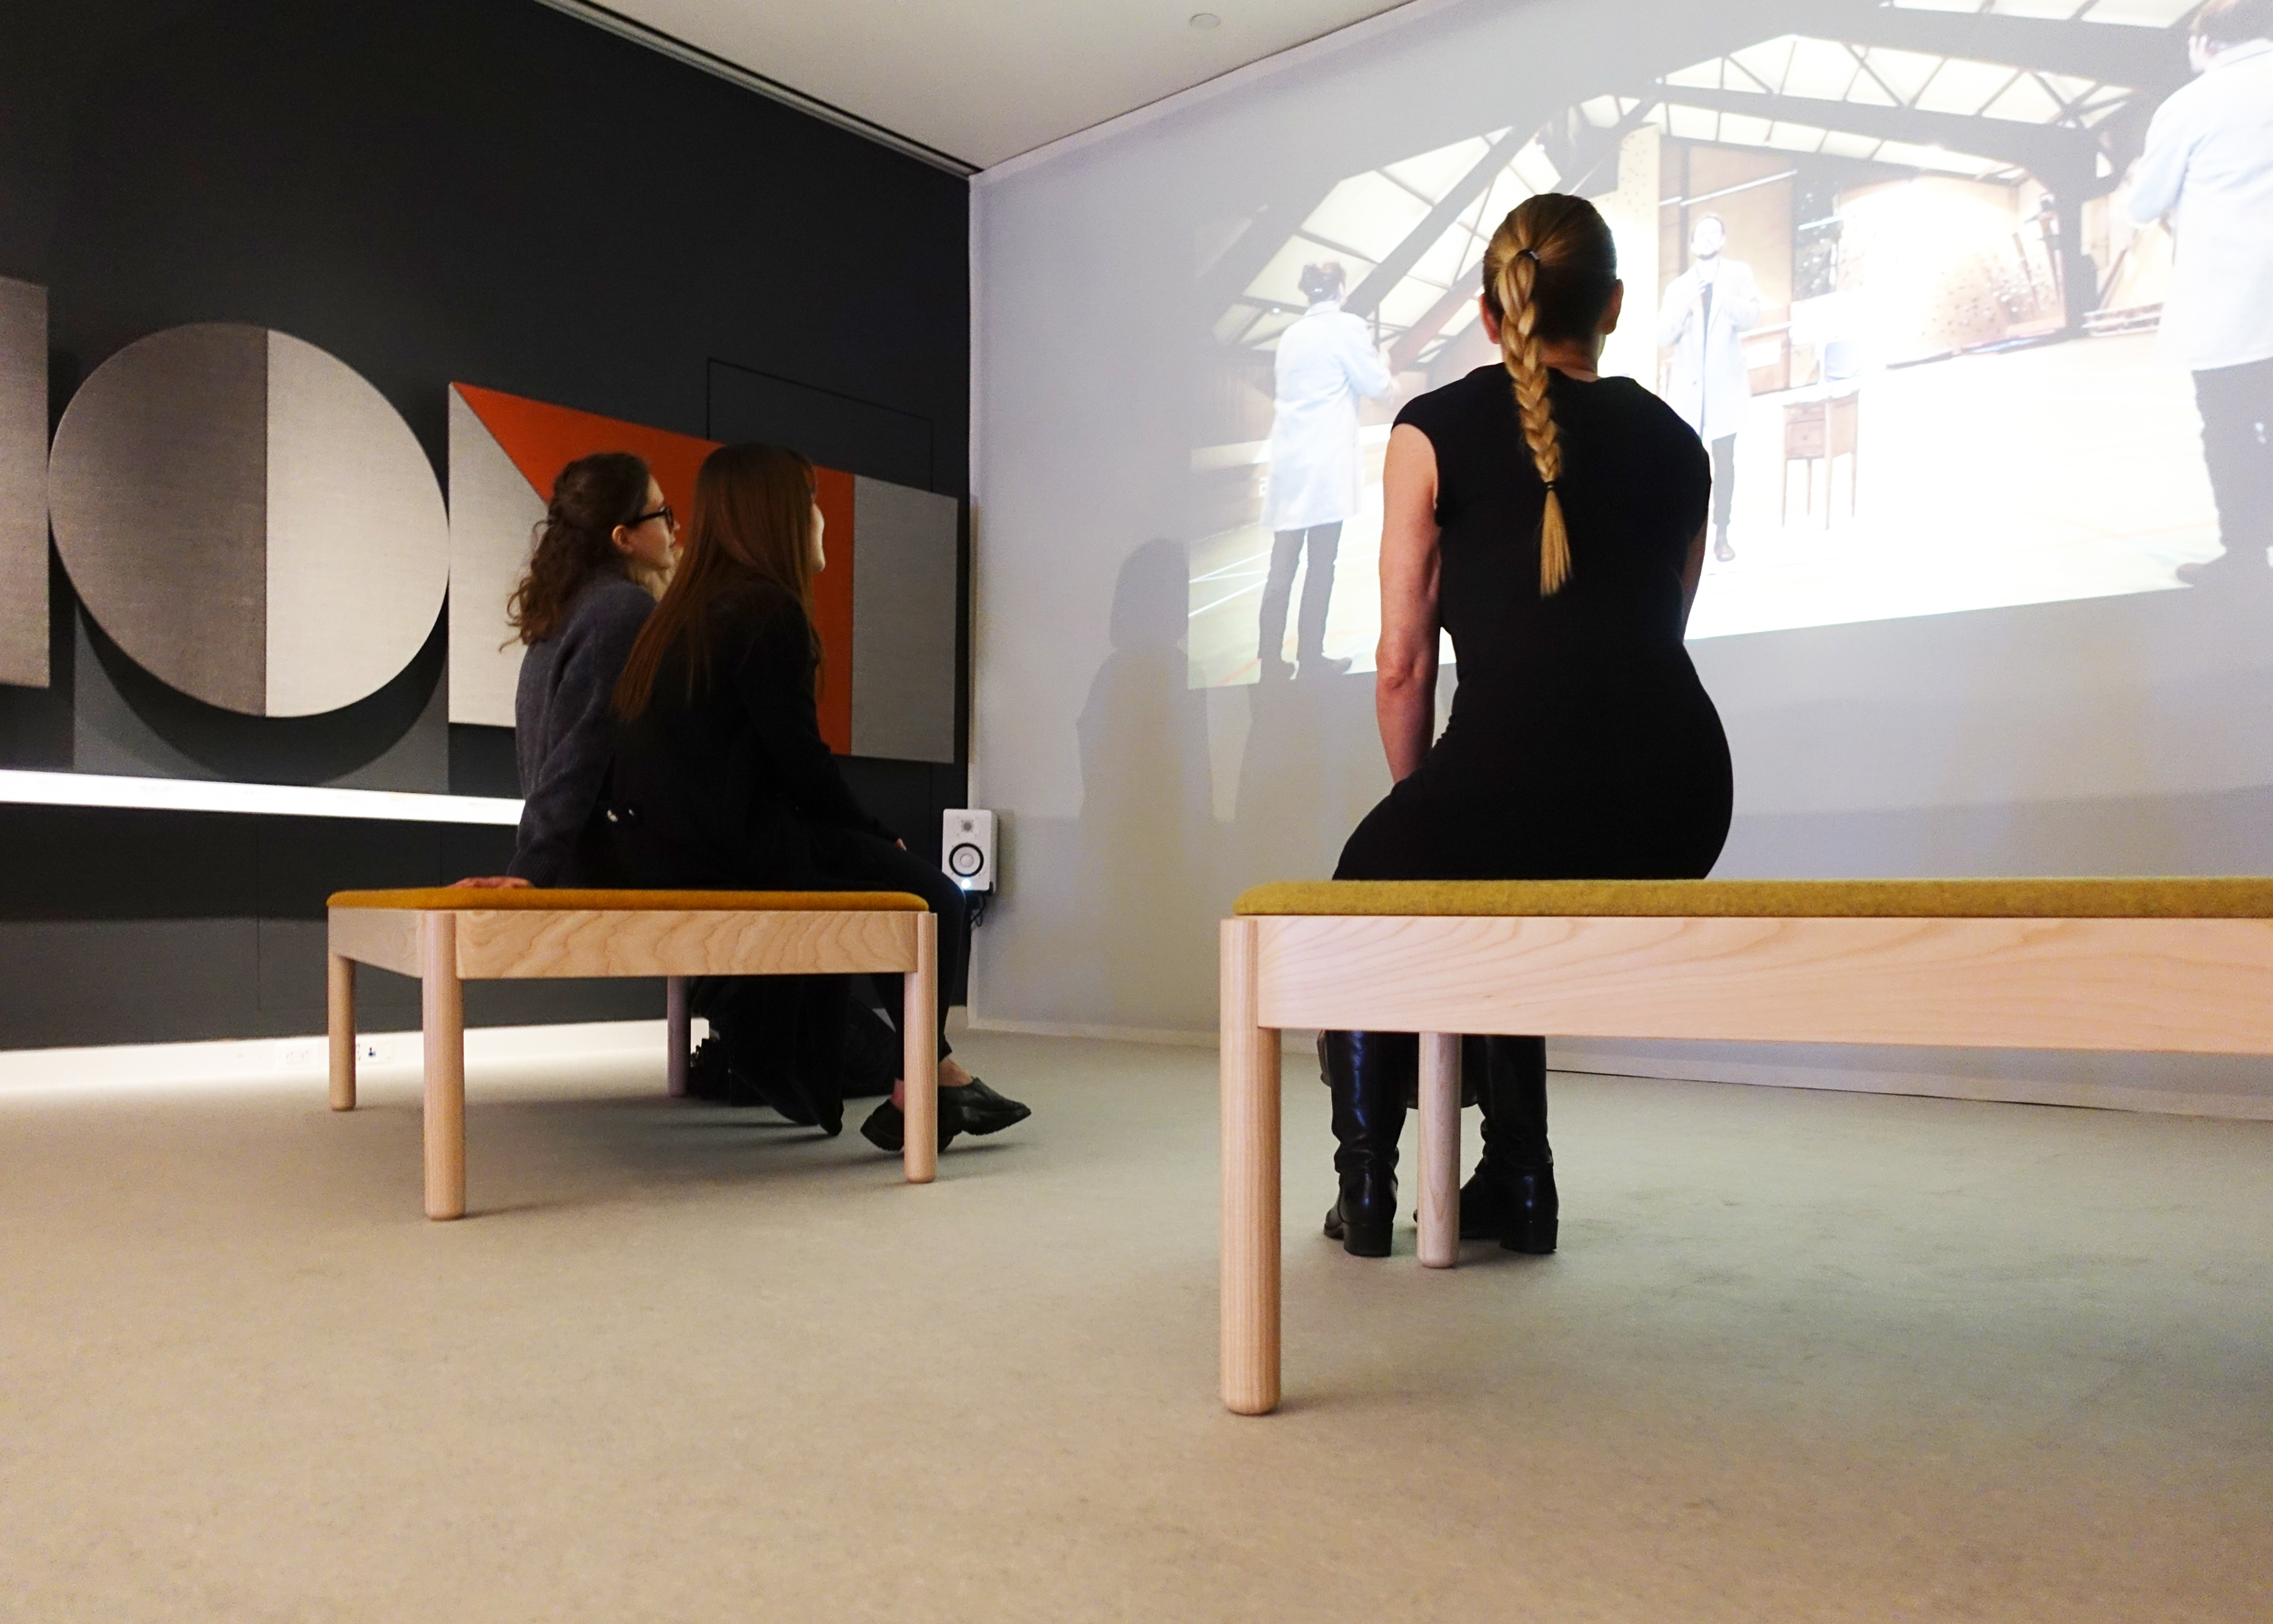 Wakufuru benches by Johan Kauppi at The Senses, Design Beyond Vision at Cooper Hewitt